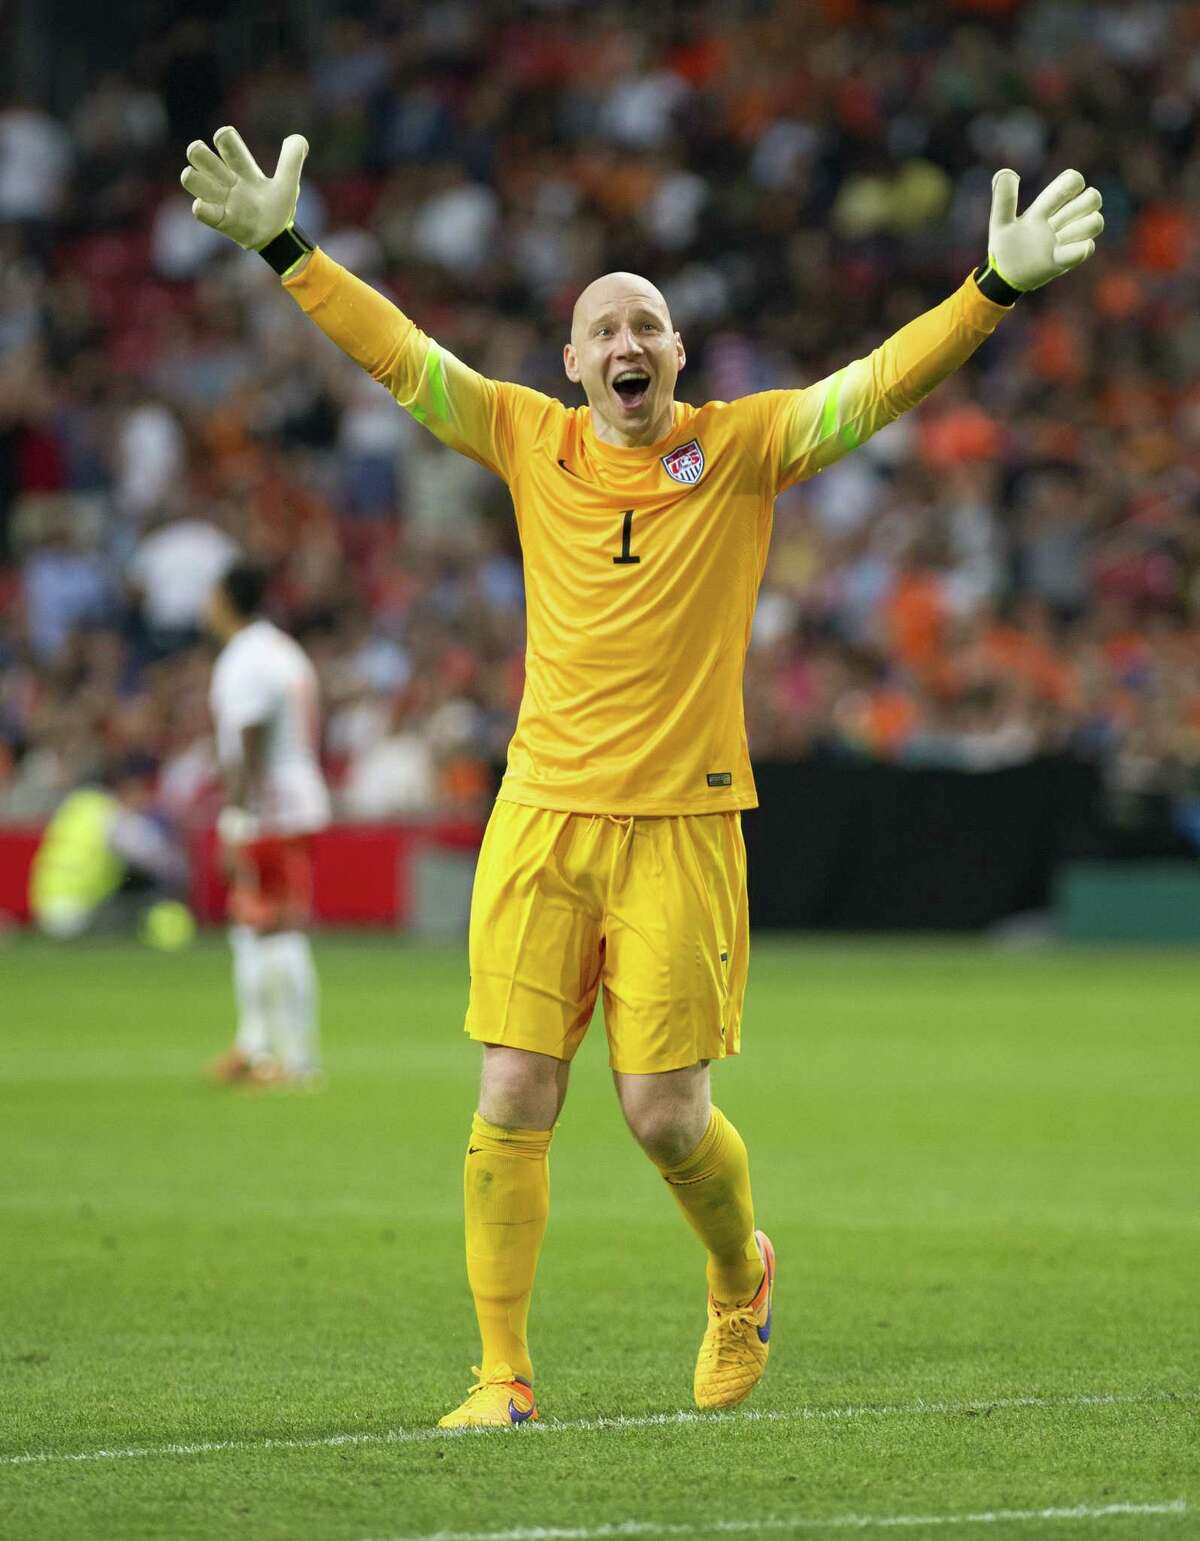 USA goalkeeper Brad Guzan celebrates the Americans' victory over the Netherlands in an international friendly Friday at ArenA Stadium in Amsterdam.